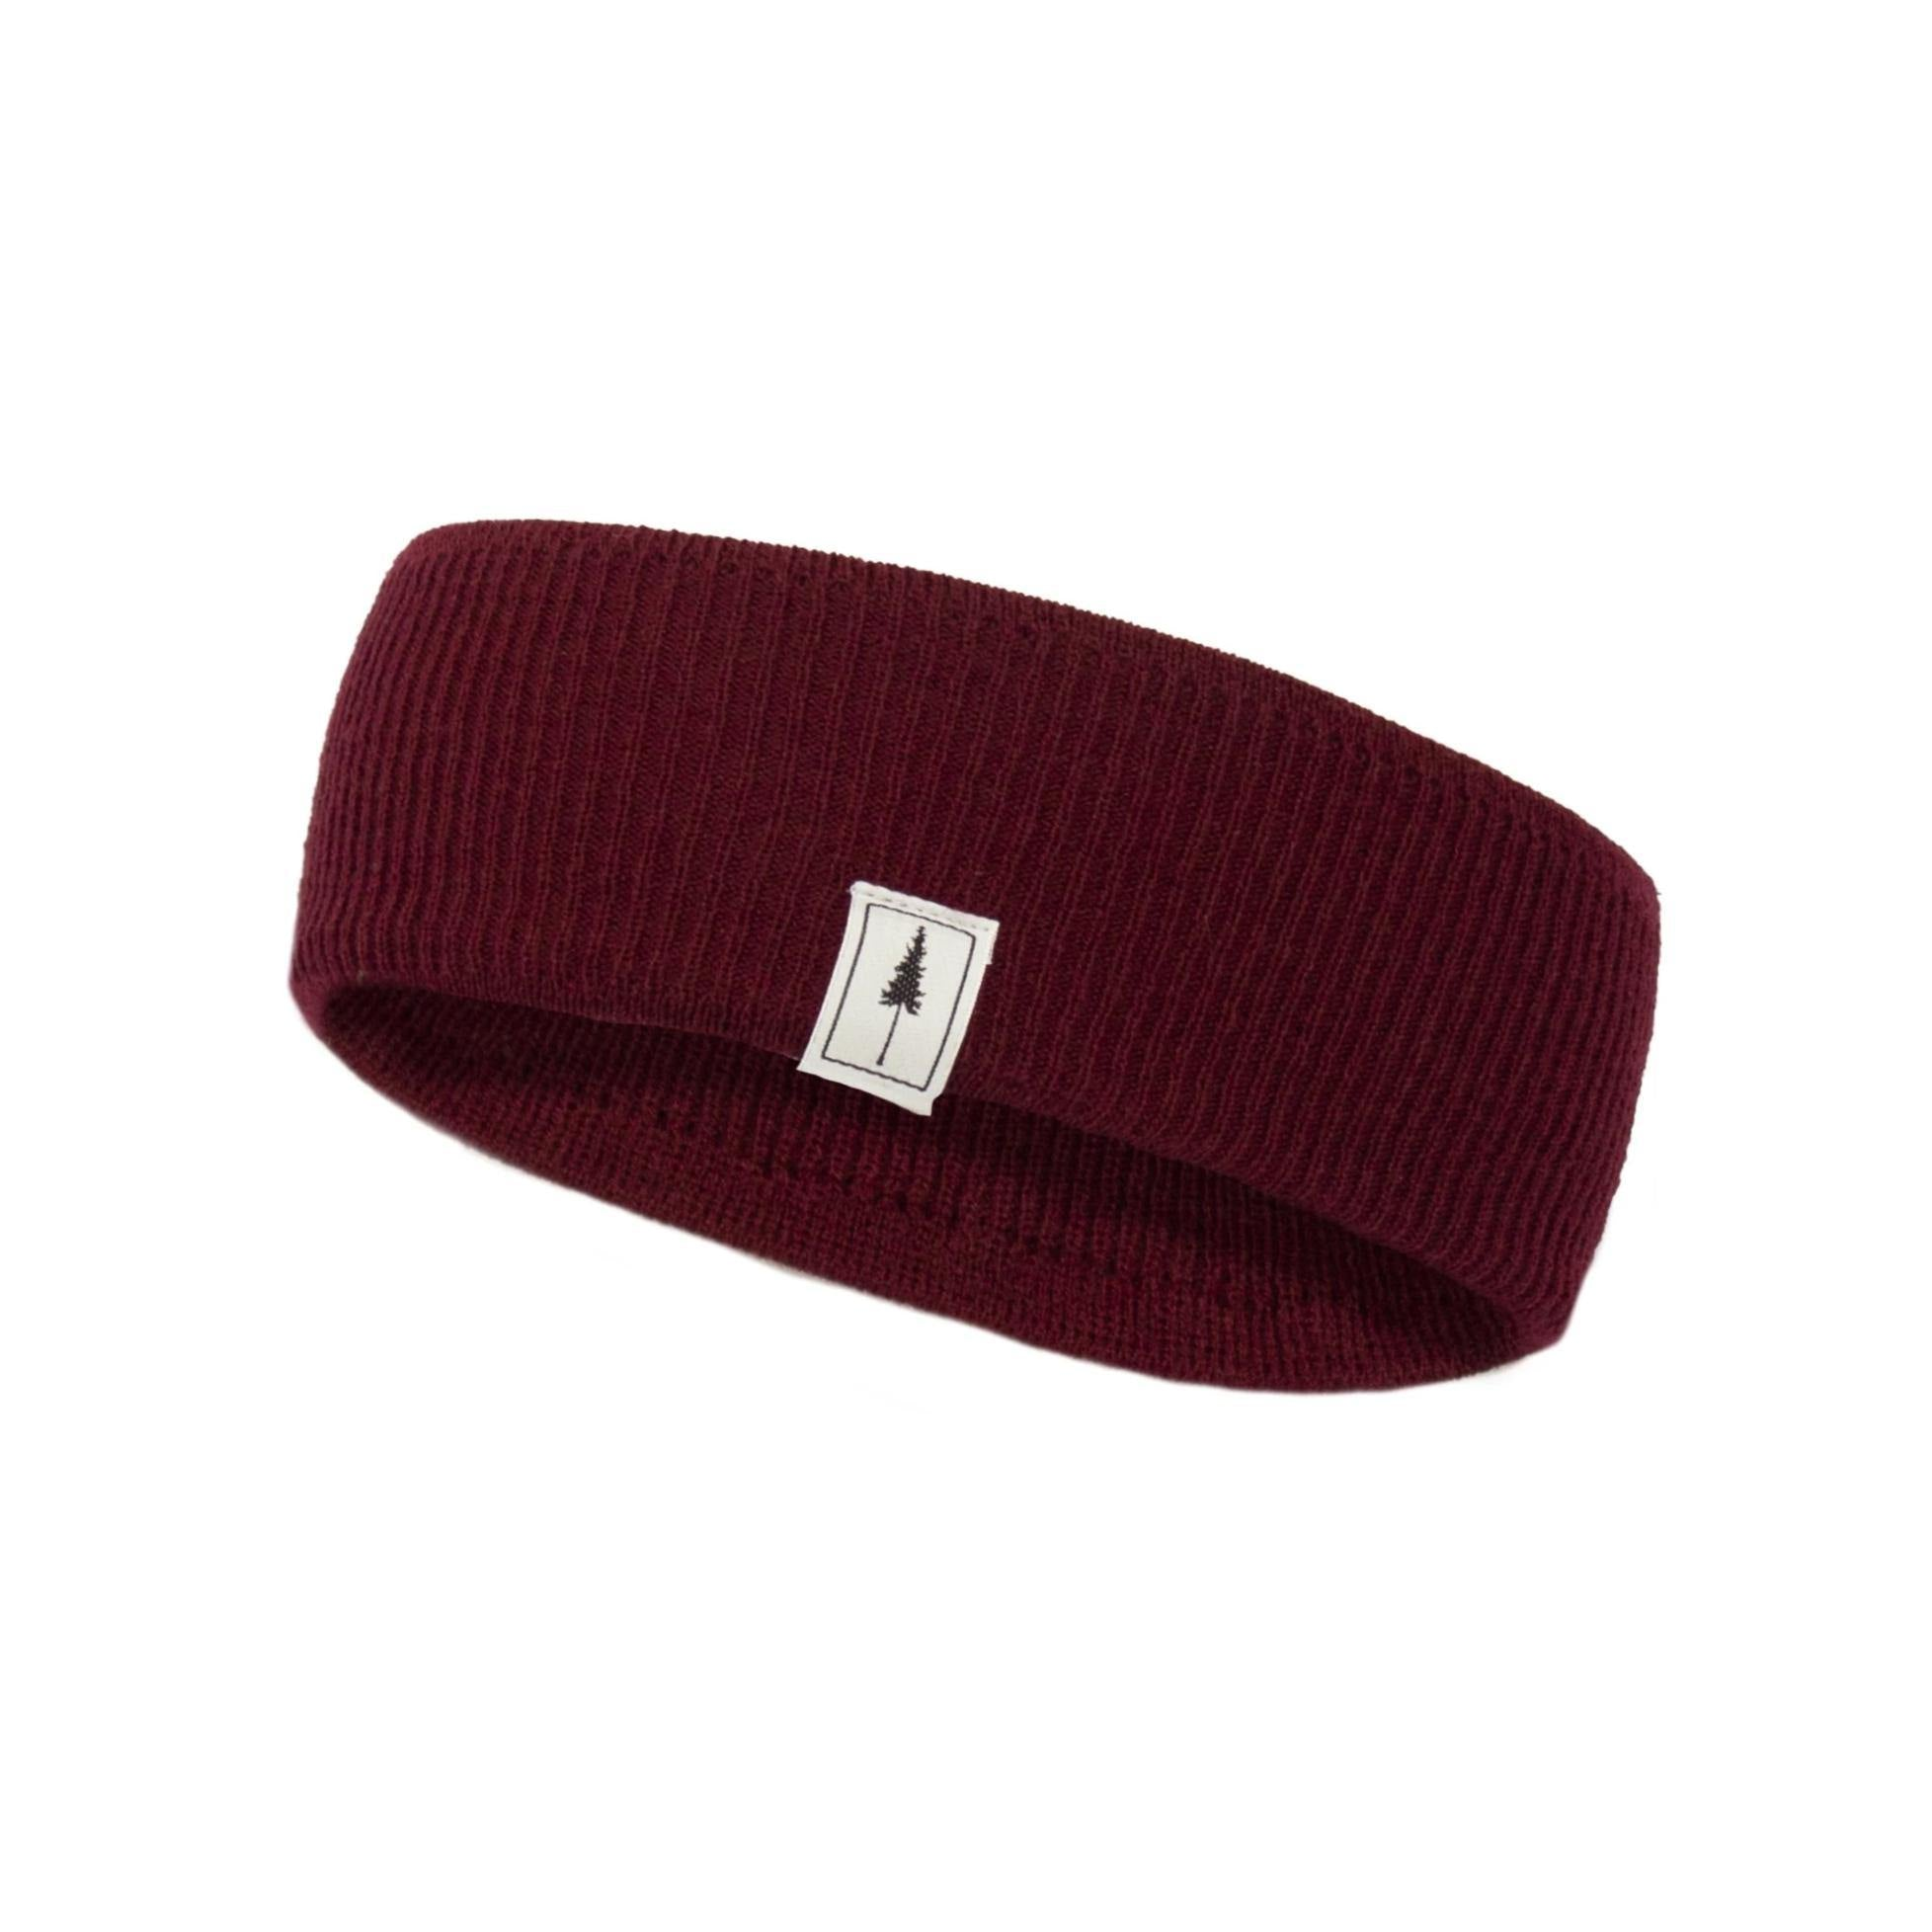 Headband Sleek - NIKIN